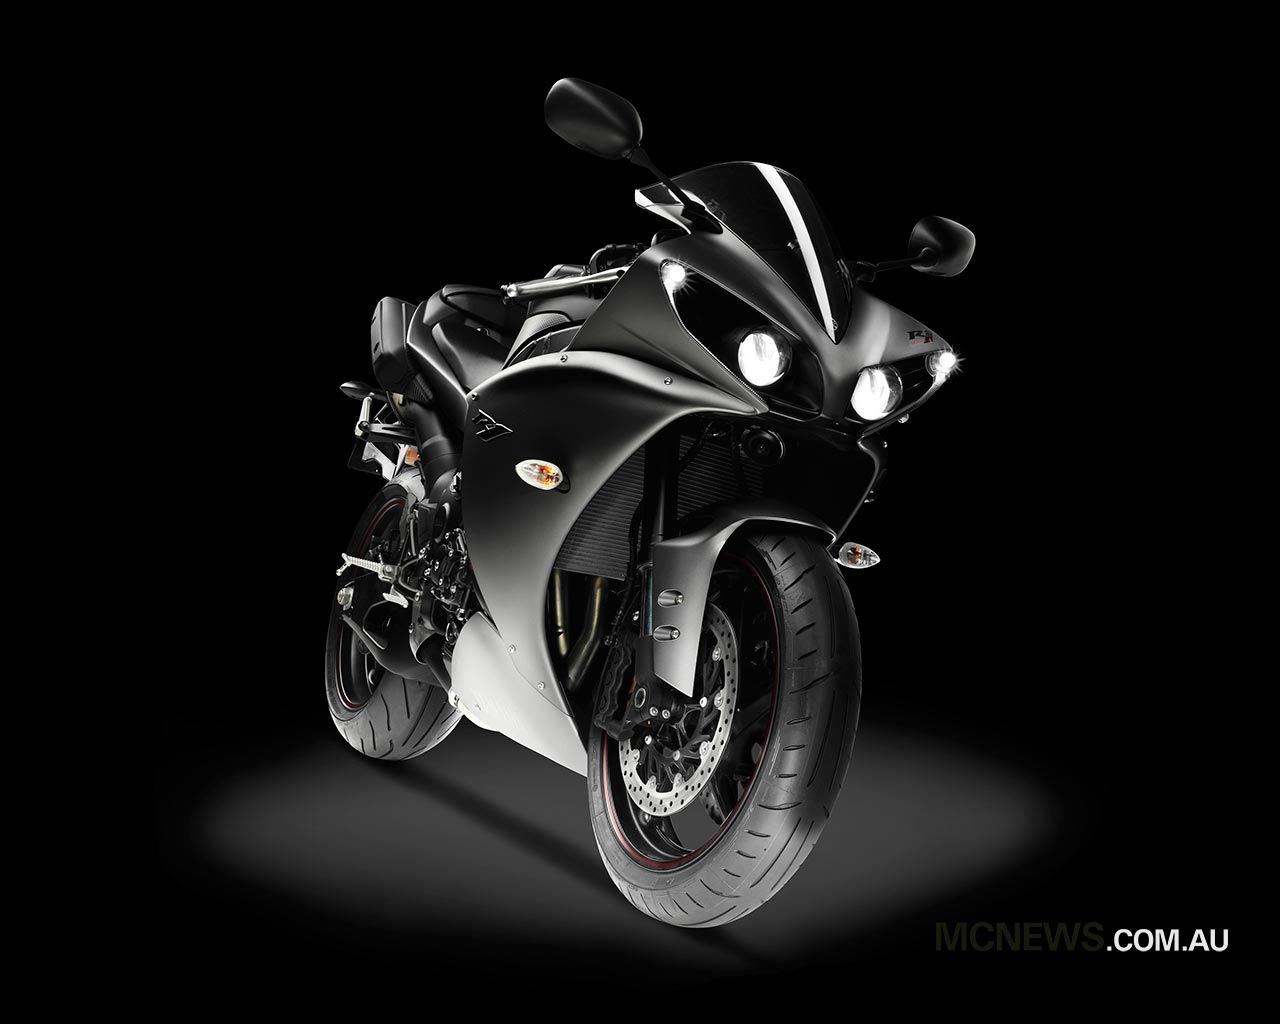 Hd wallpaper yamaha - 2012 Yamaha Yzf R1 Wallpapers Ready For Your Download To Use For Desktop Background